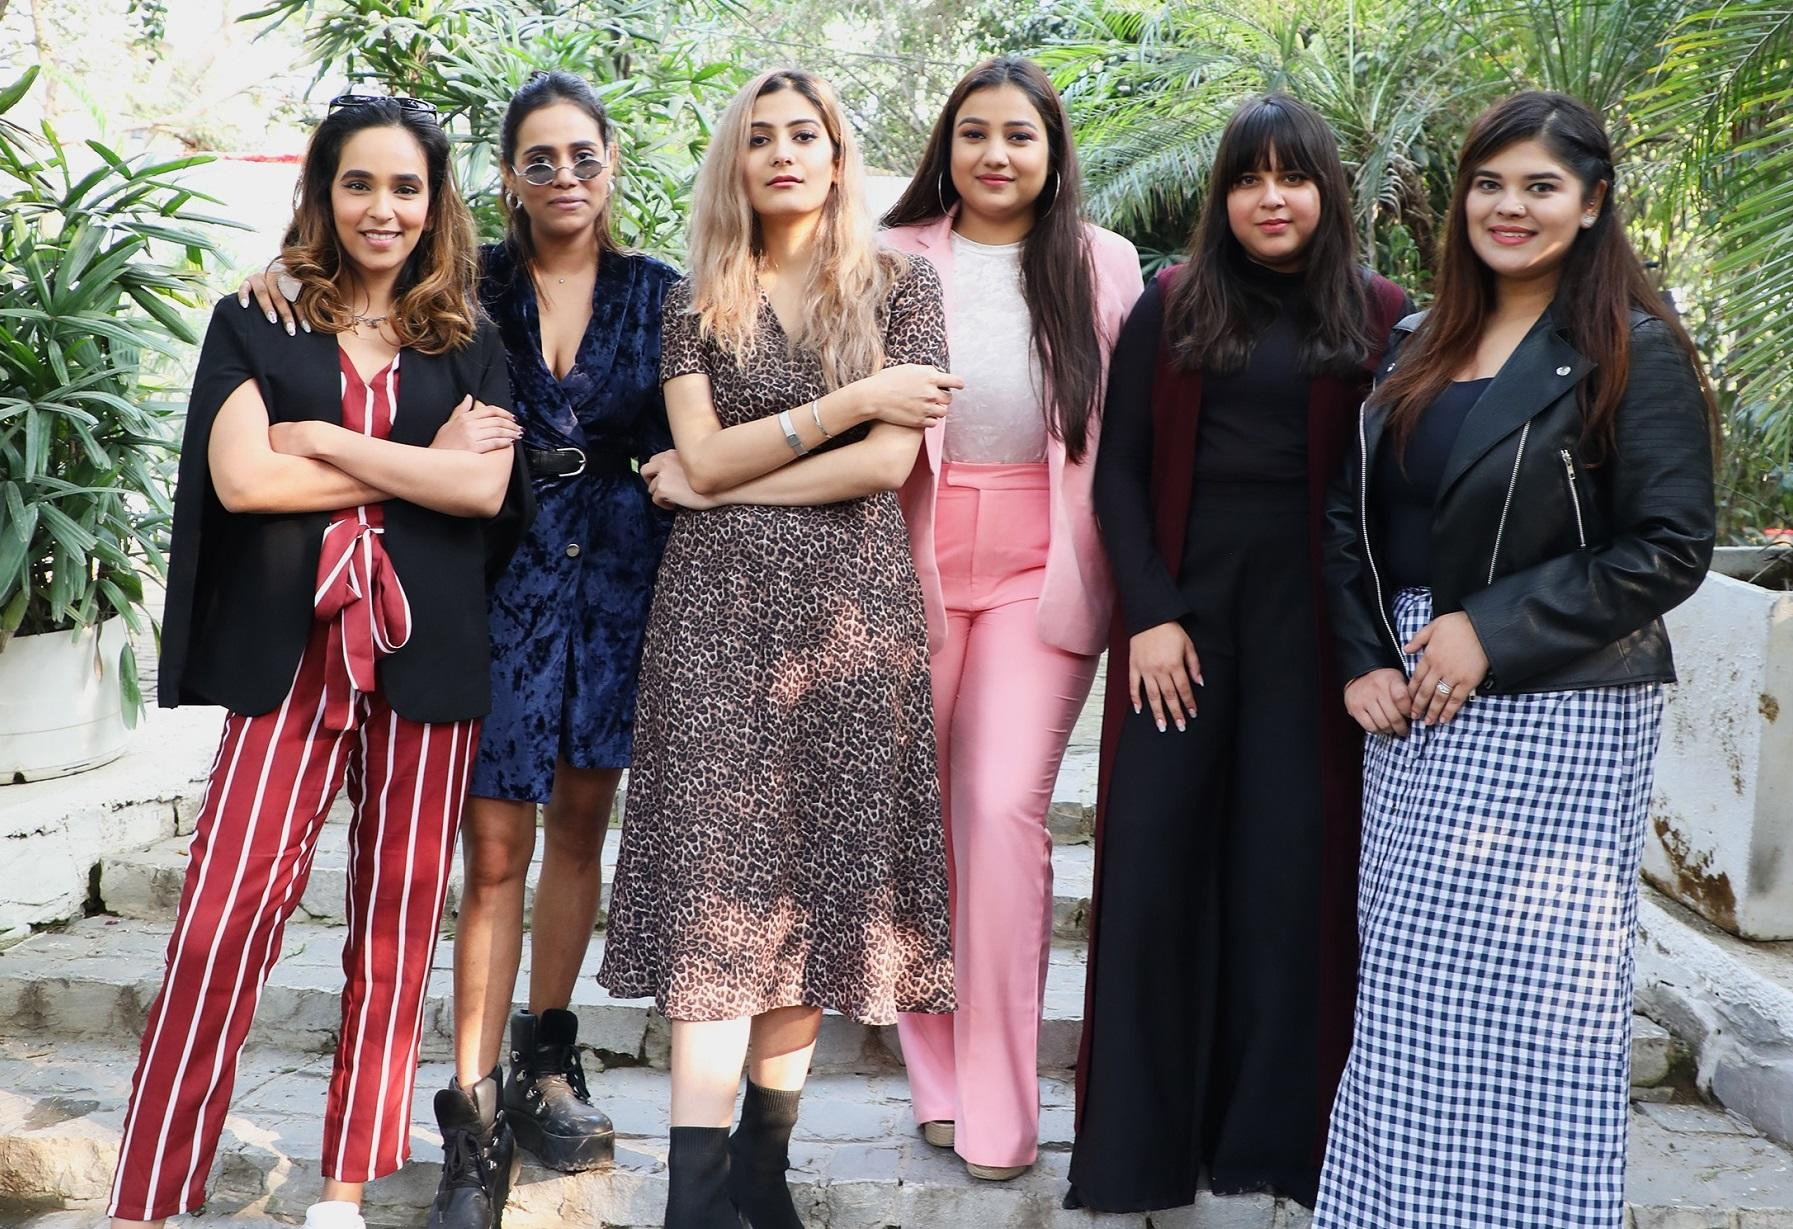 Online fashion store FabAlley aims to propel conversation with their second leg of the #FabFitsAll campaign